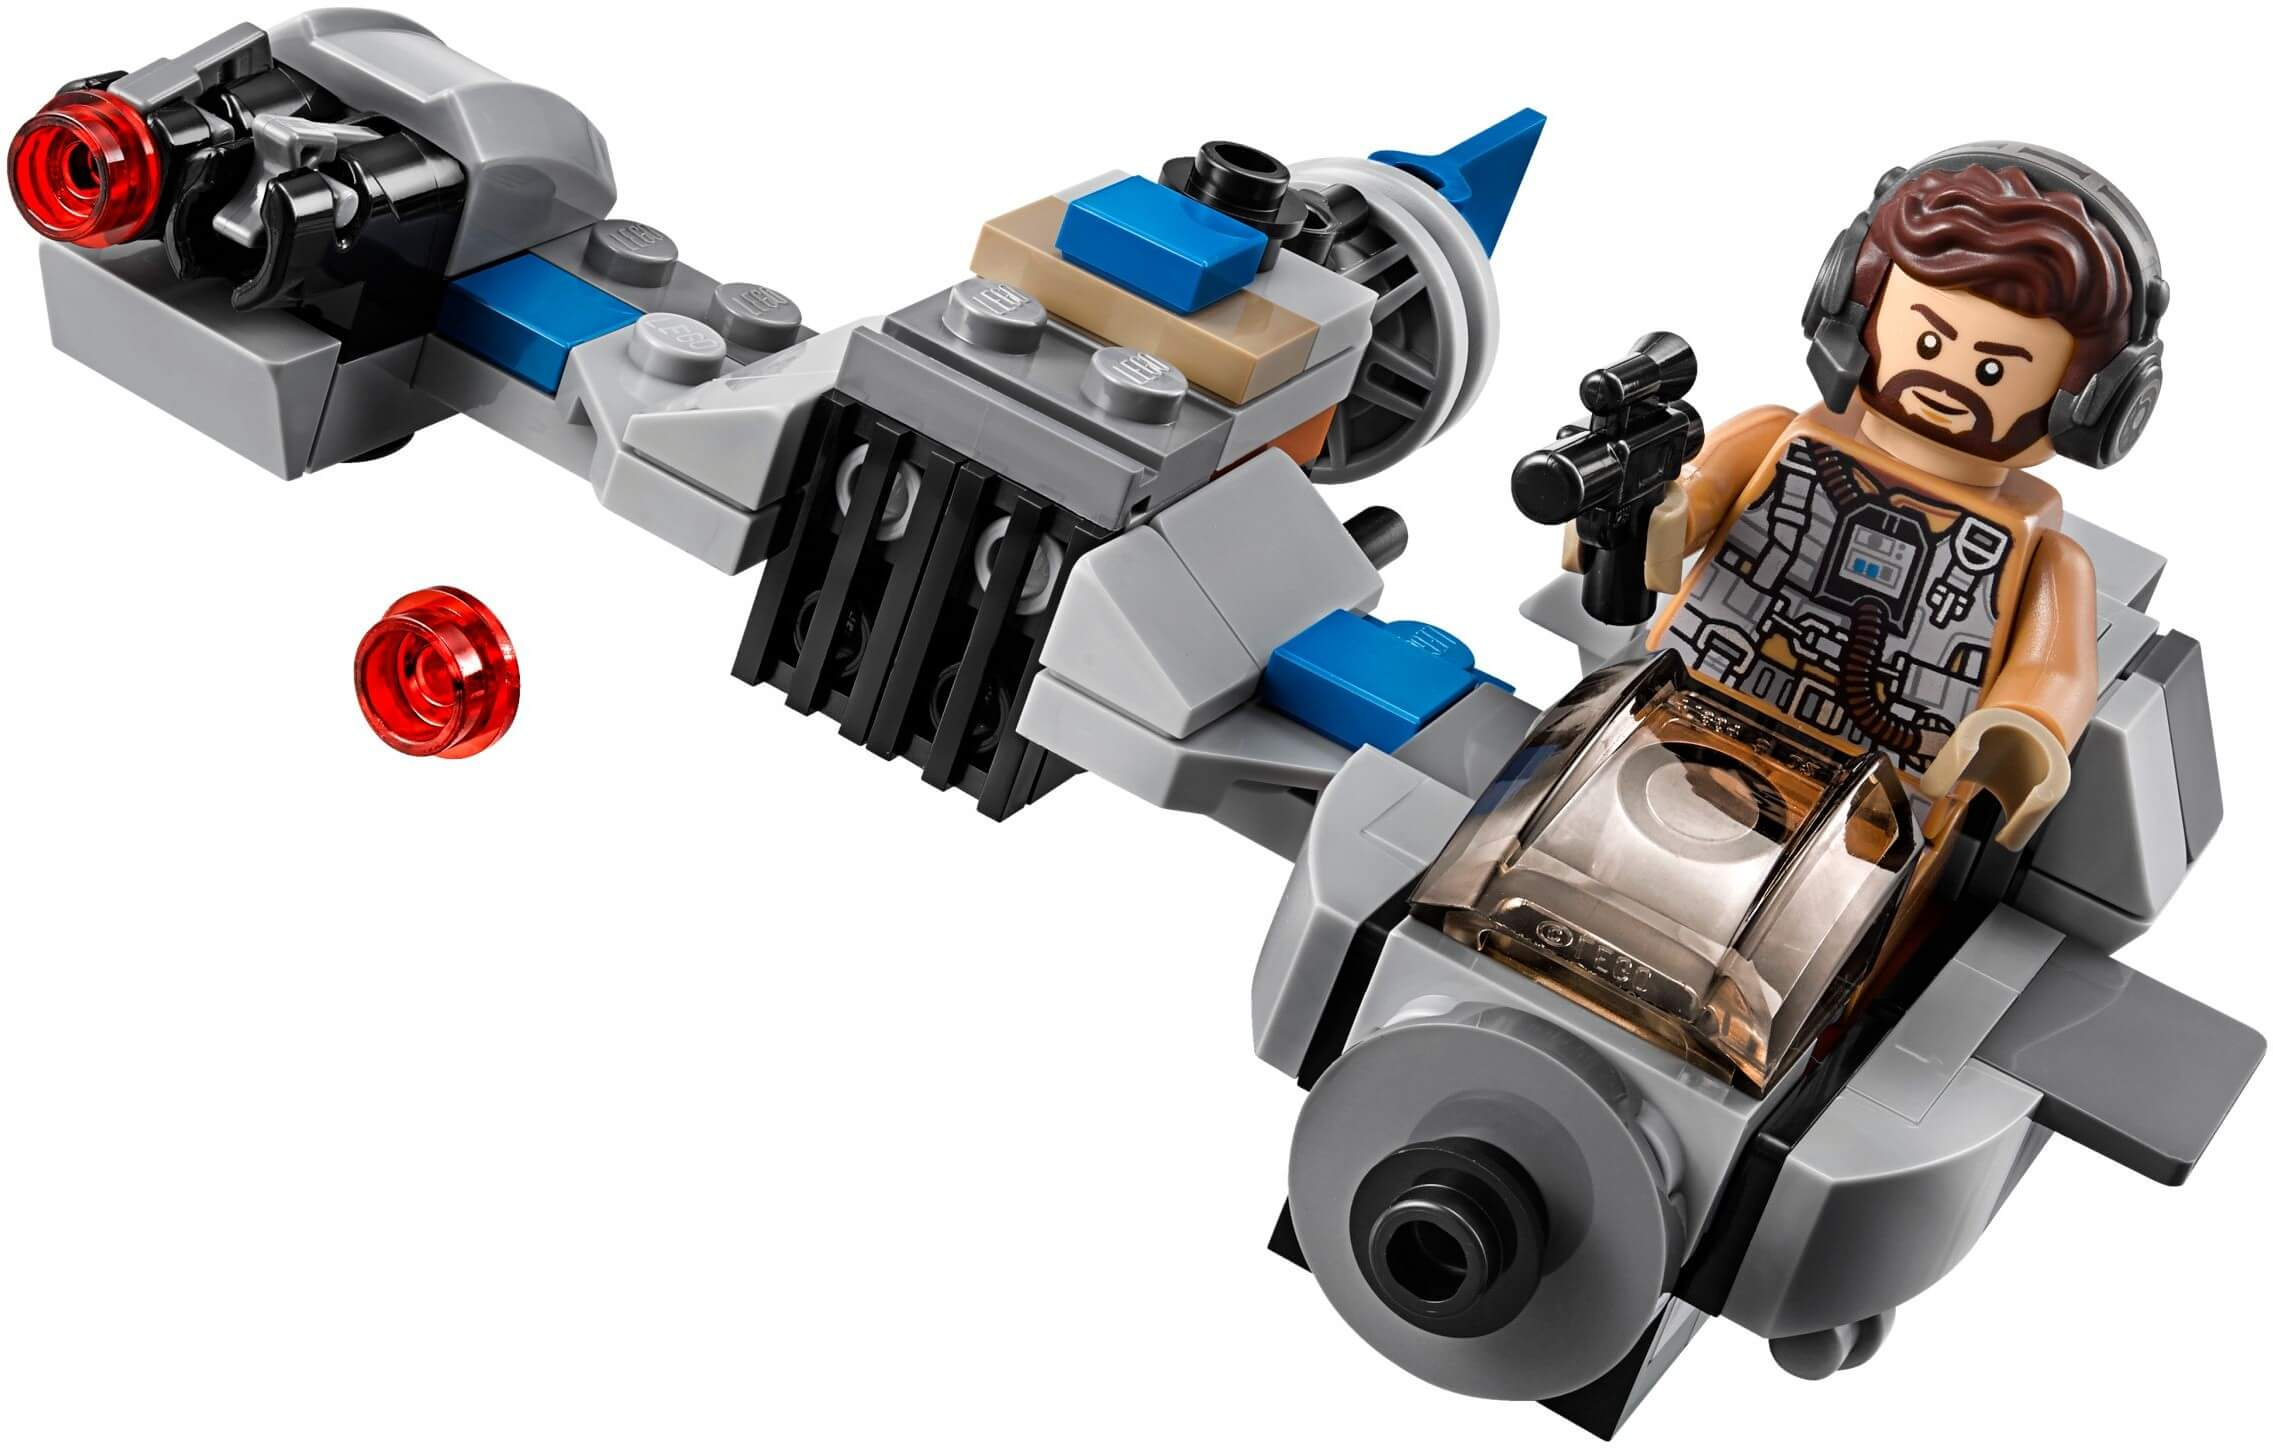 Mua đồ chơi LEGO 75195 - LEGO Star Wars 75195 - Ski Speeder vs. First Order Walker (LEGO 75195 Ski Speeder vs. First Order Walker Microfighters)